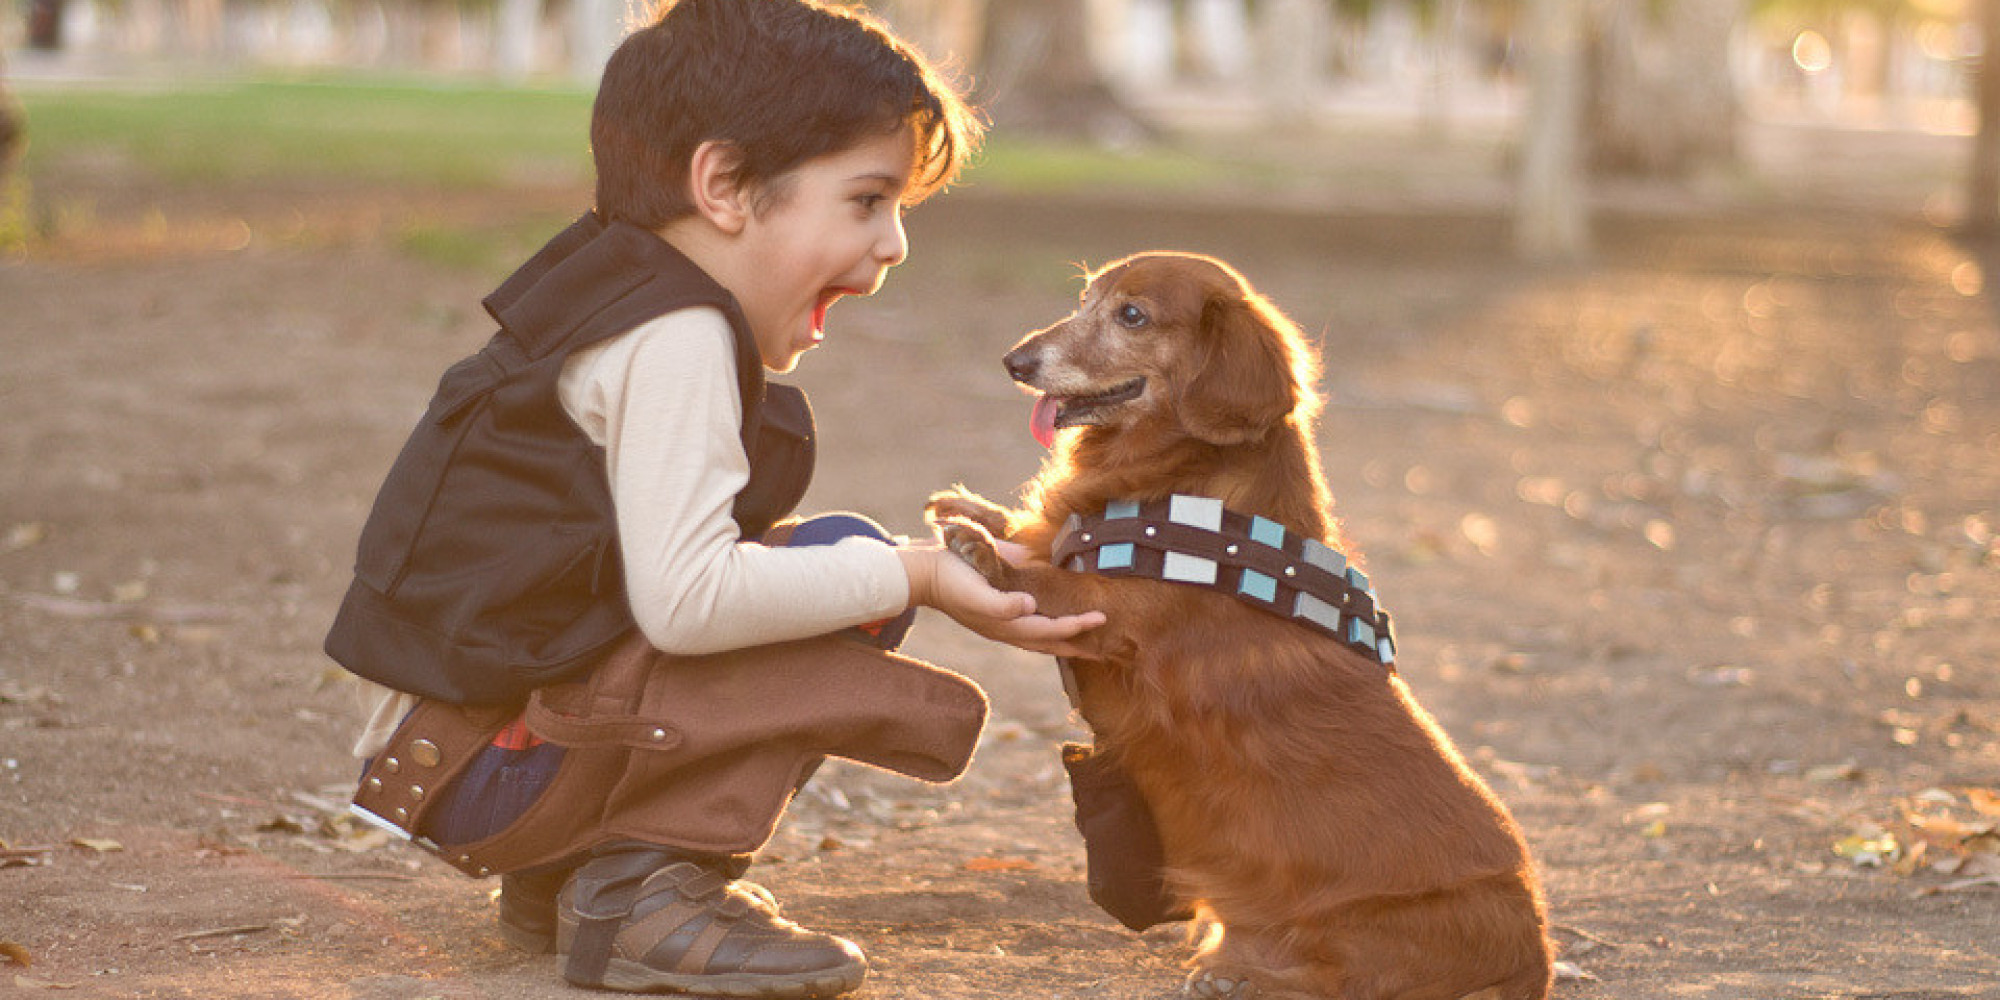 10 Adorable Halloween Costumes For Kids And Dogs That You Didn't ...